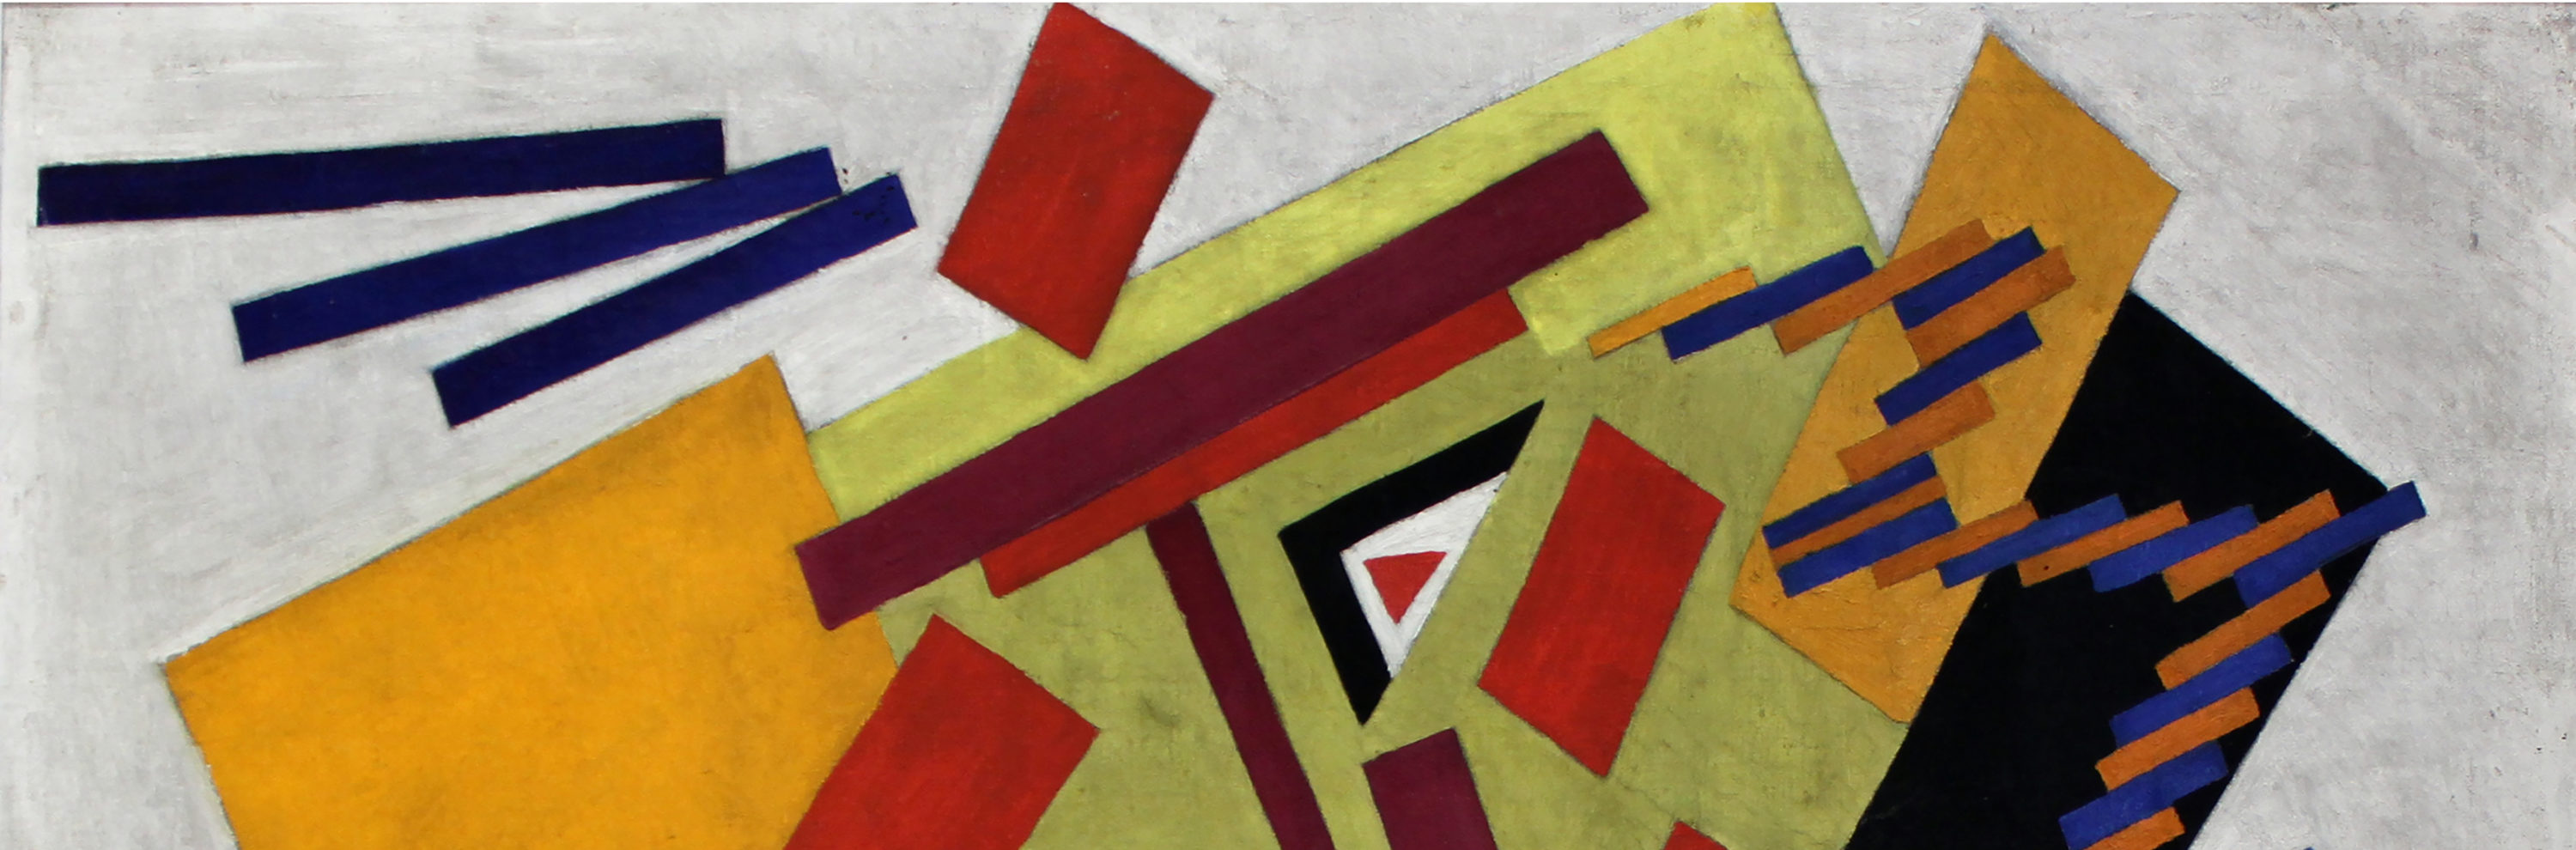 From Moscow to Saint-Petersburg: Women Pioneers of Russian Modernism - AWARE